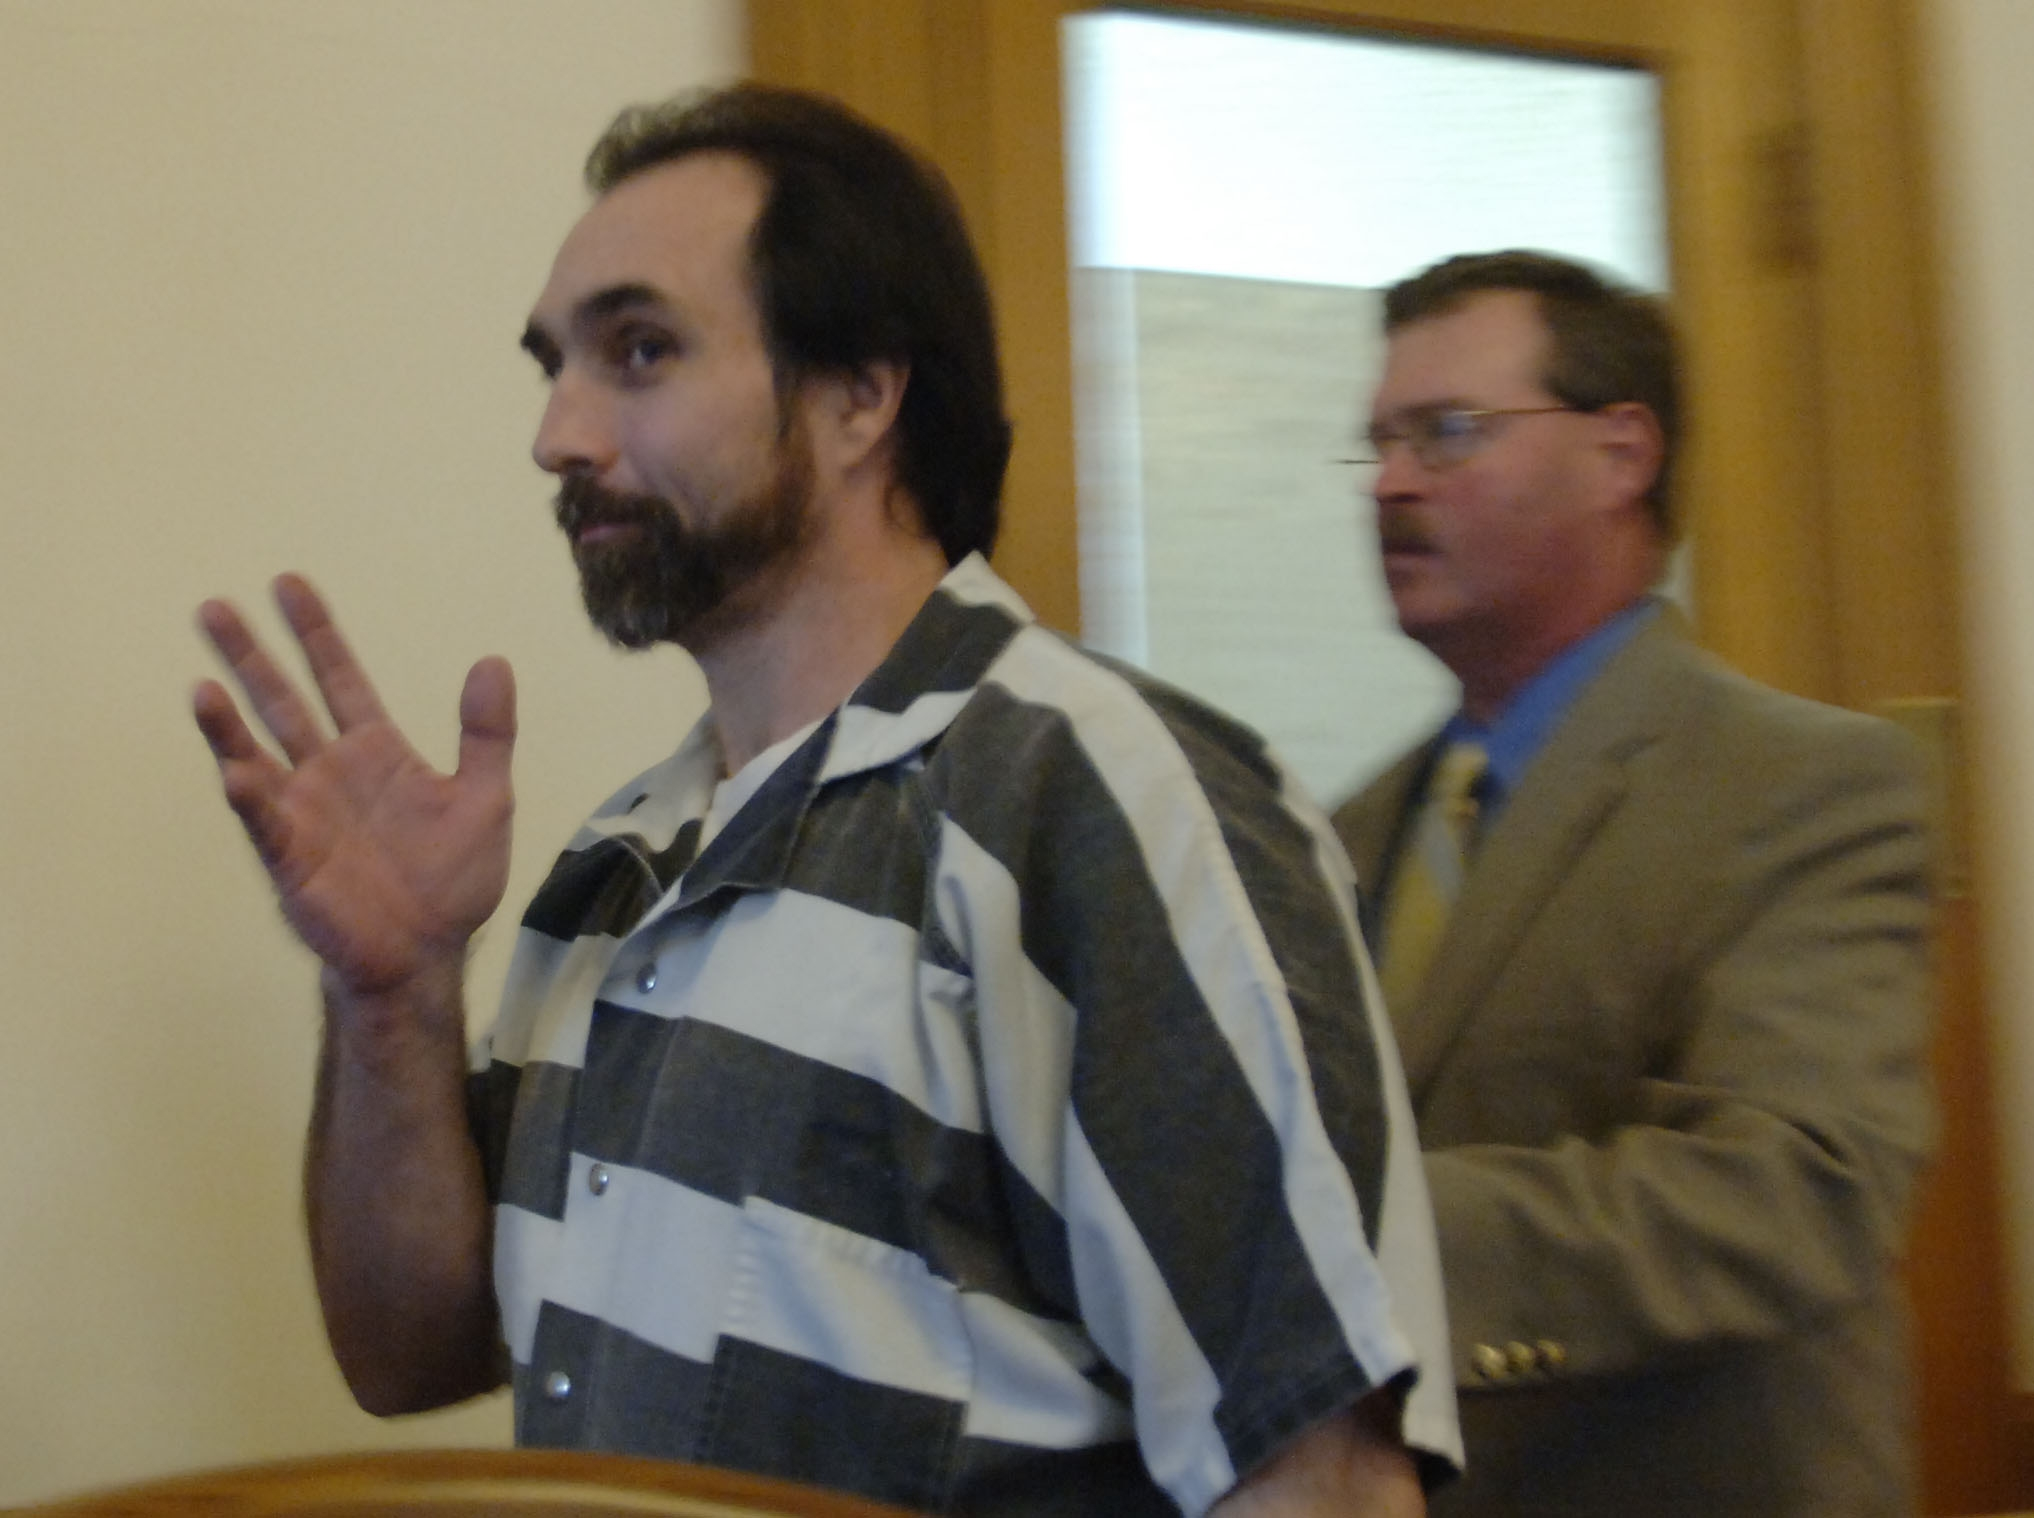 Ralph 'Bucky' Phillips waves after pleading guilty in Chautauqua County Court in Mayville on Nov. 29, 2006. Photo by Derek Gee